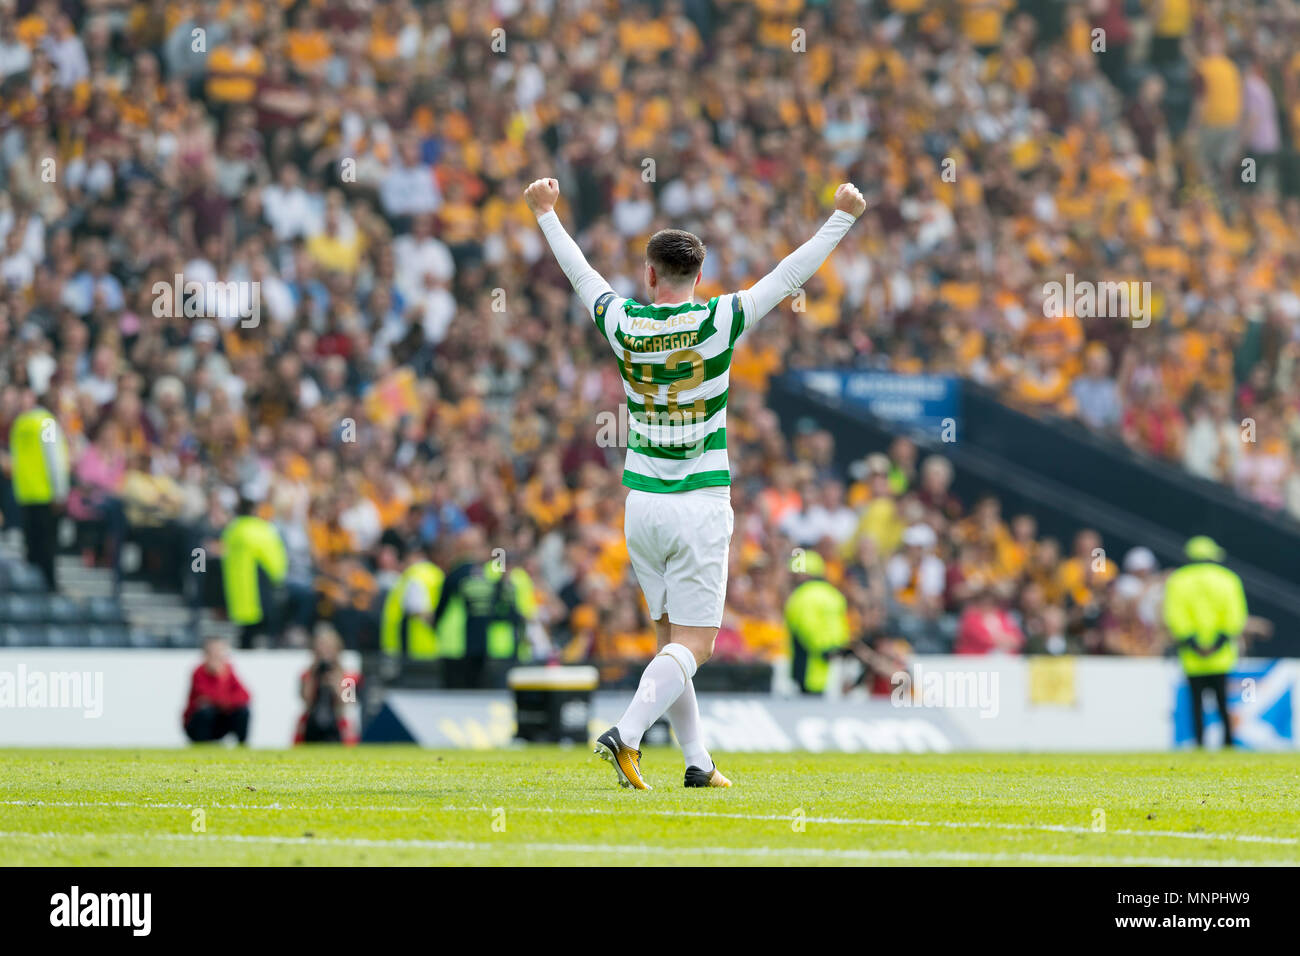 Hampden Park, Glasgow, UK. 19th May, 2018. Scottish Cup football final, Celtic versus Motherwell; Callum McGregor of Celtic celebrates at full time Credit: Action Plus Sports/Alamy Live News - Stock Image